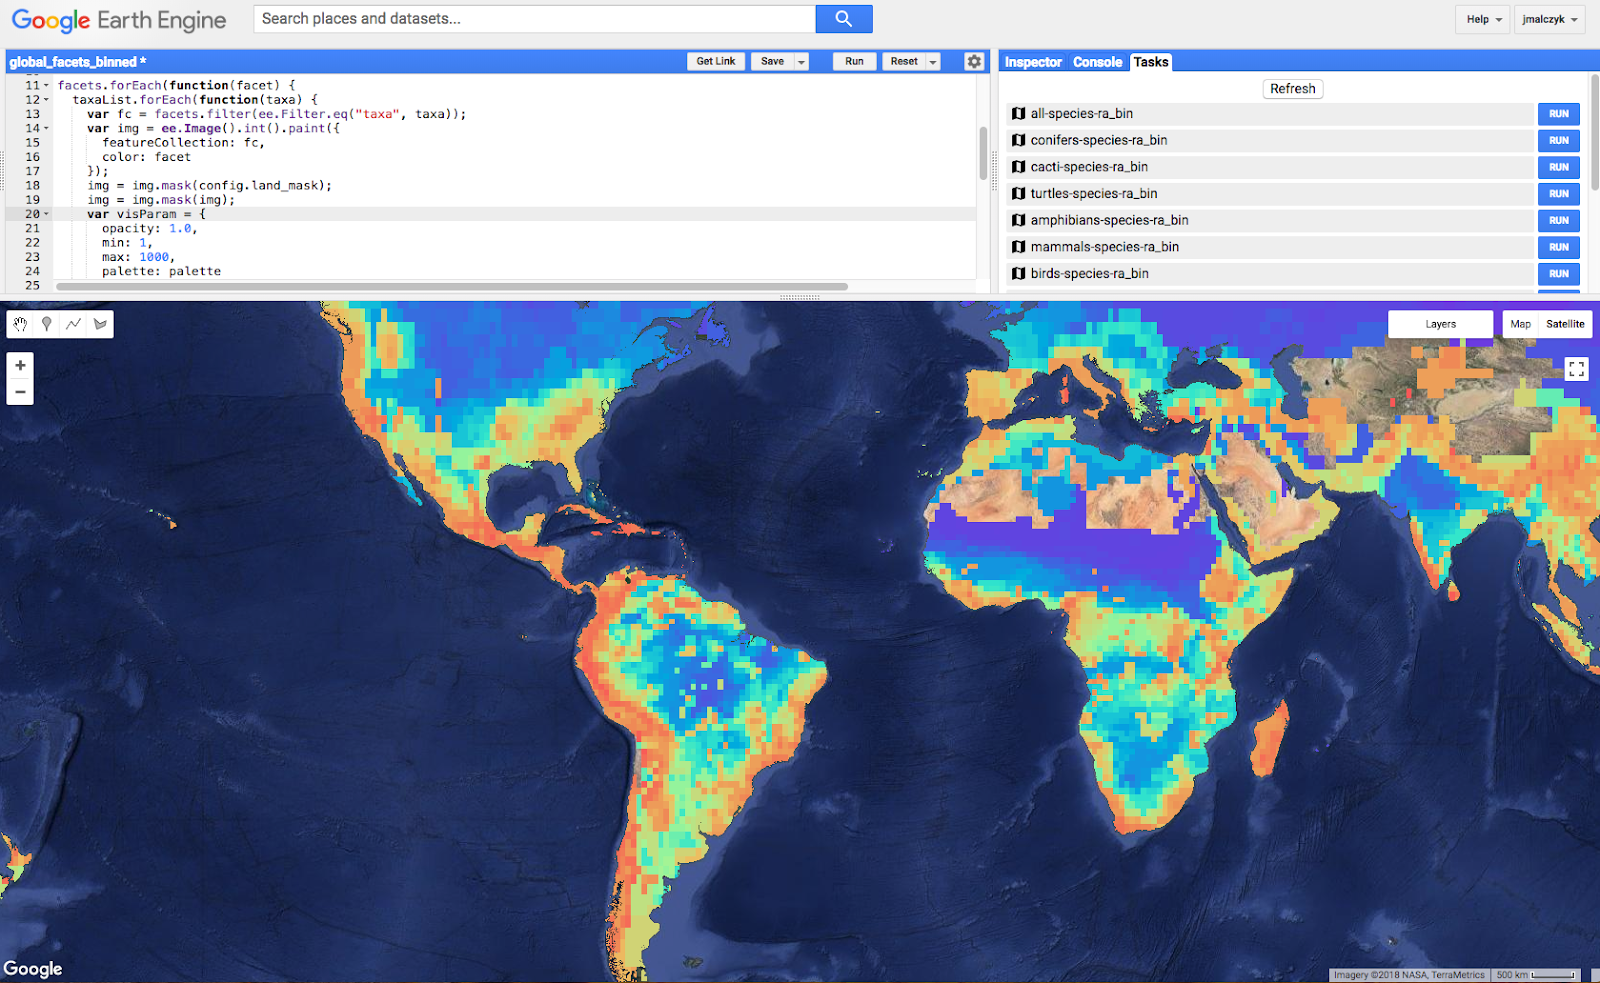 Mapping Species for Half-Earth - Google Earth and Earth